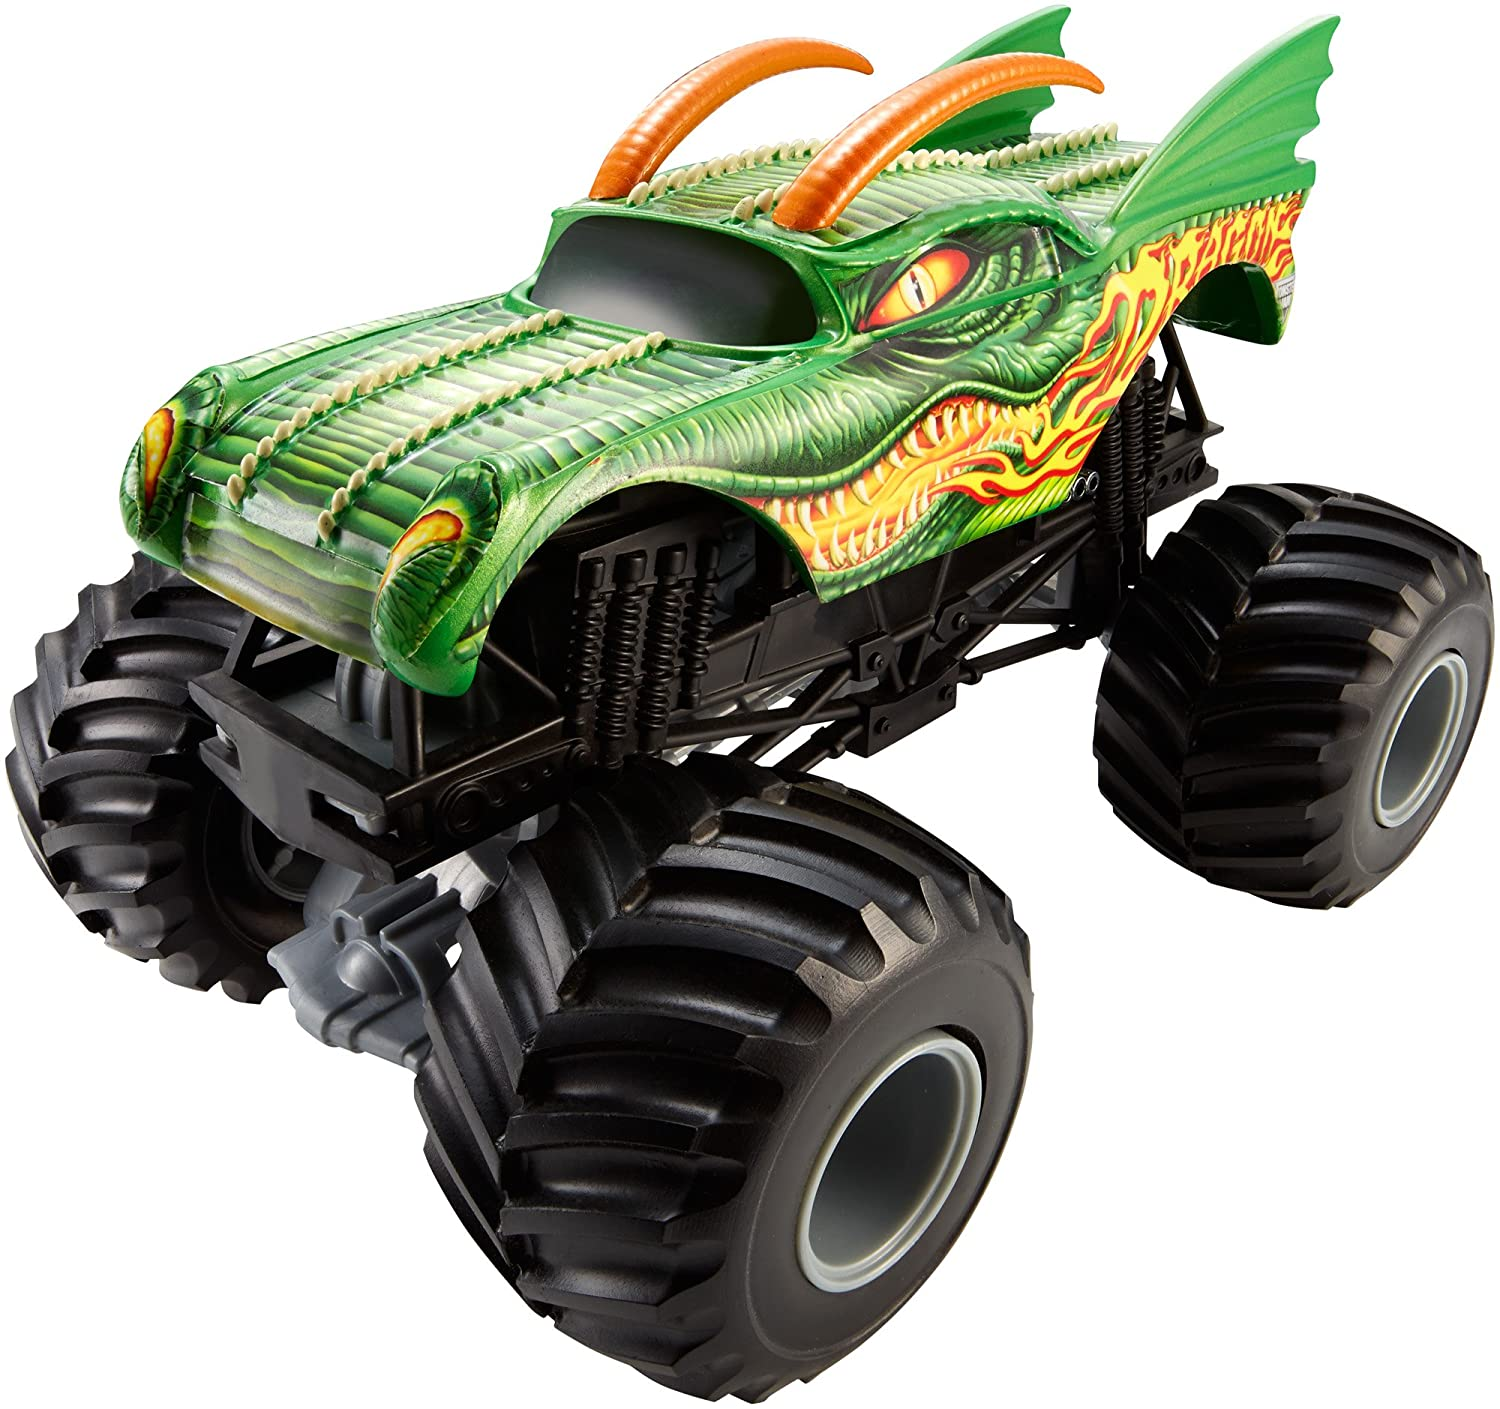 Hot Wheels Monster Jam 1 24 Scale Dragon Vehicle